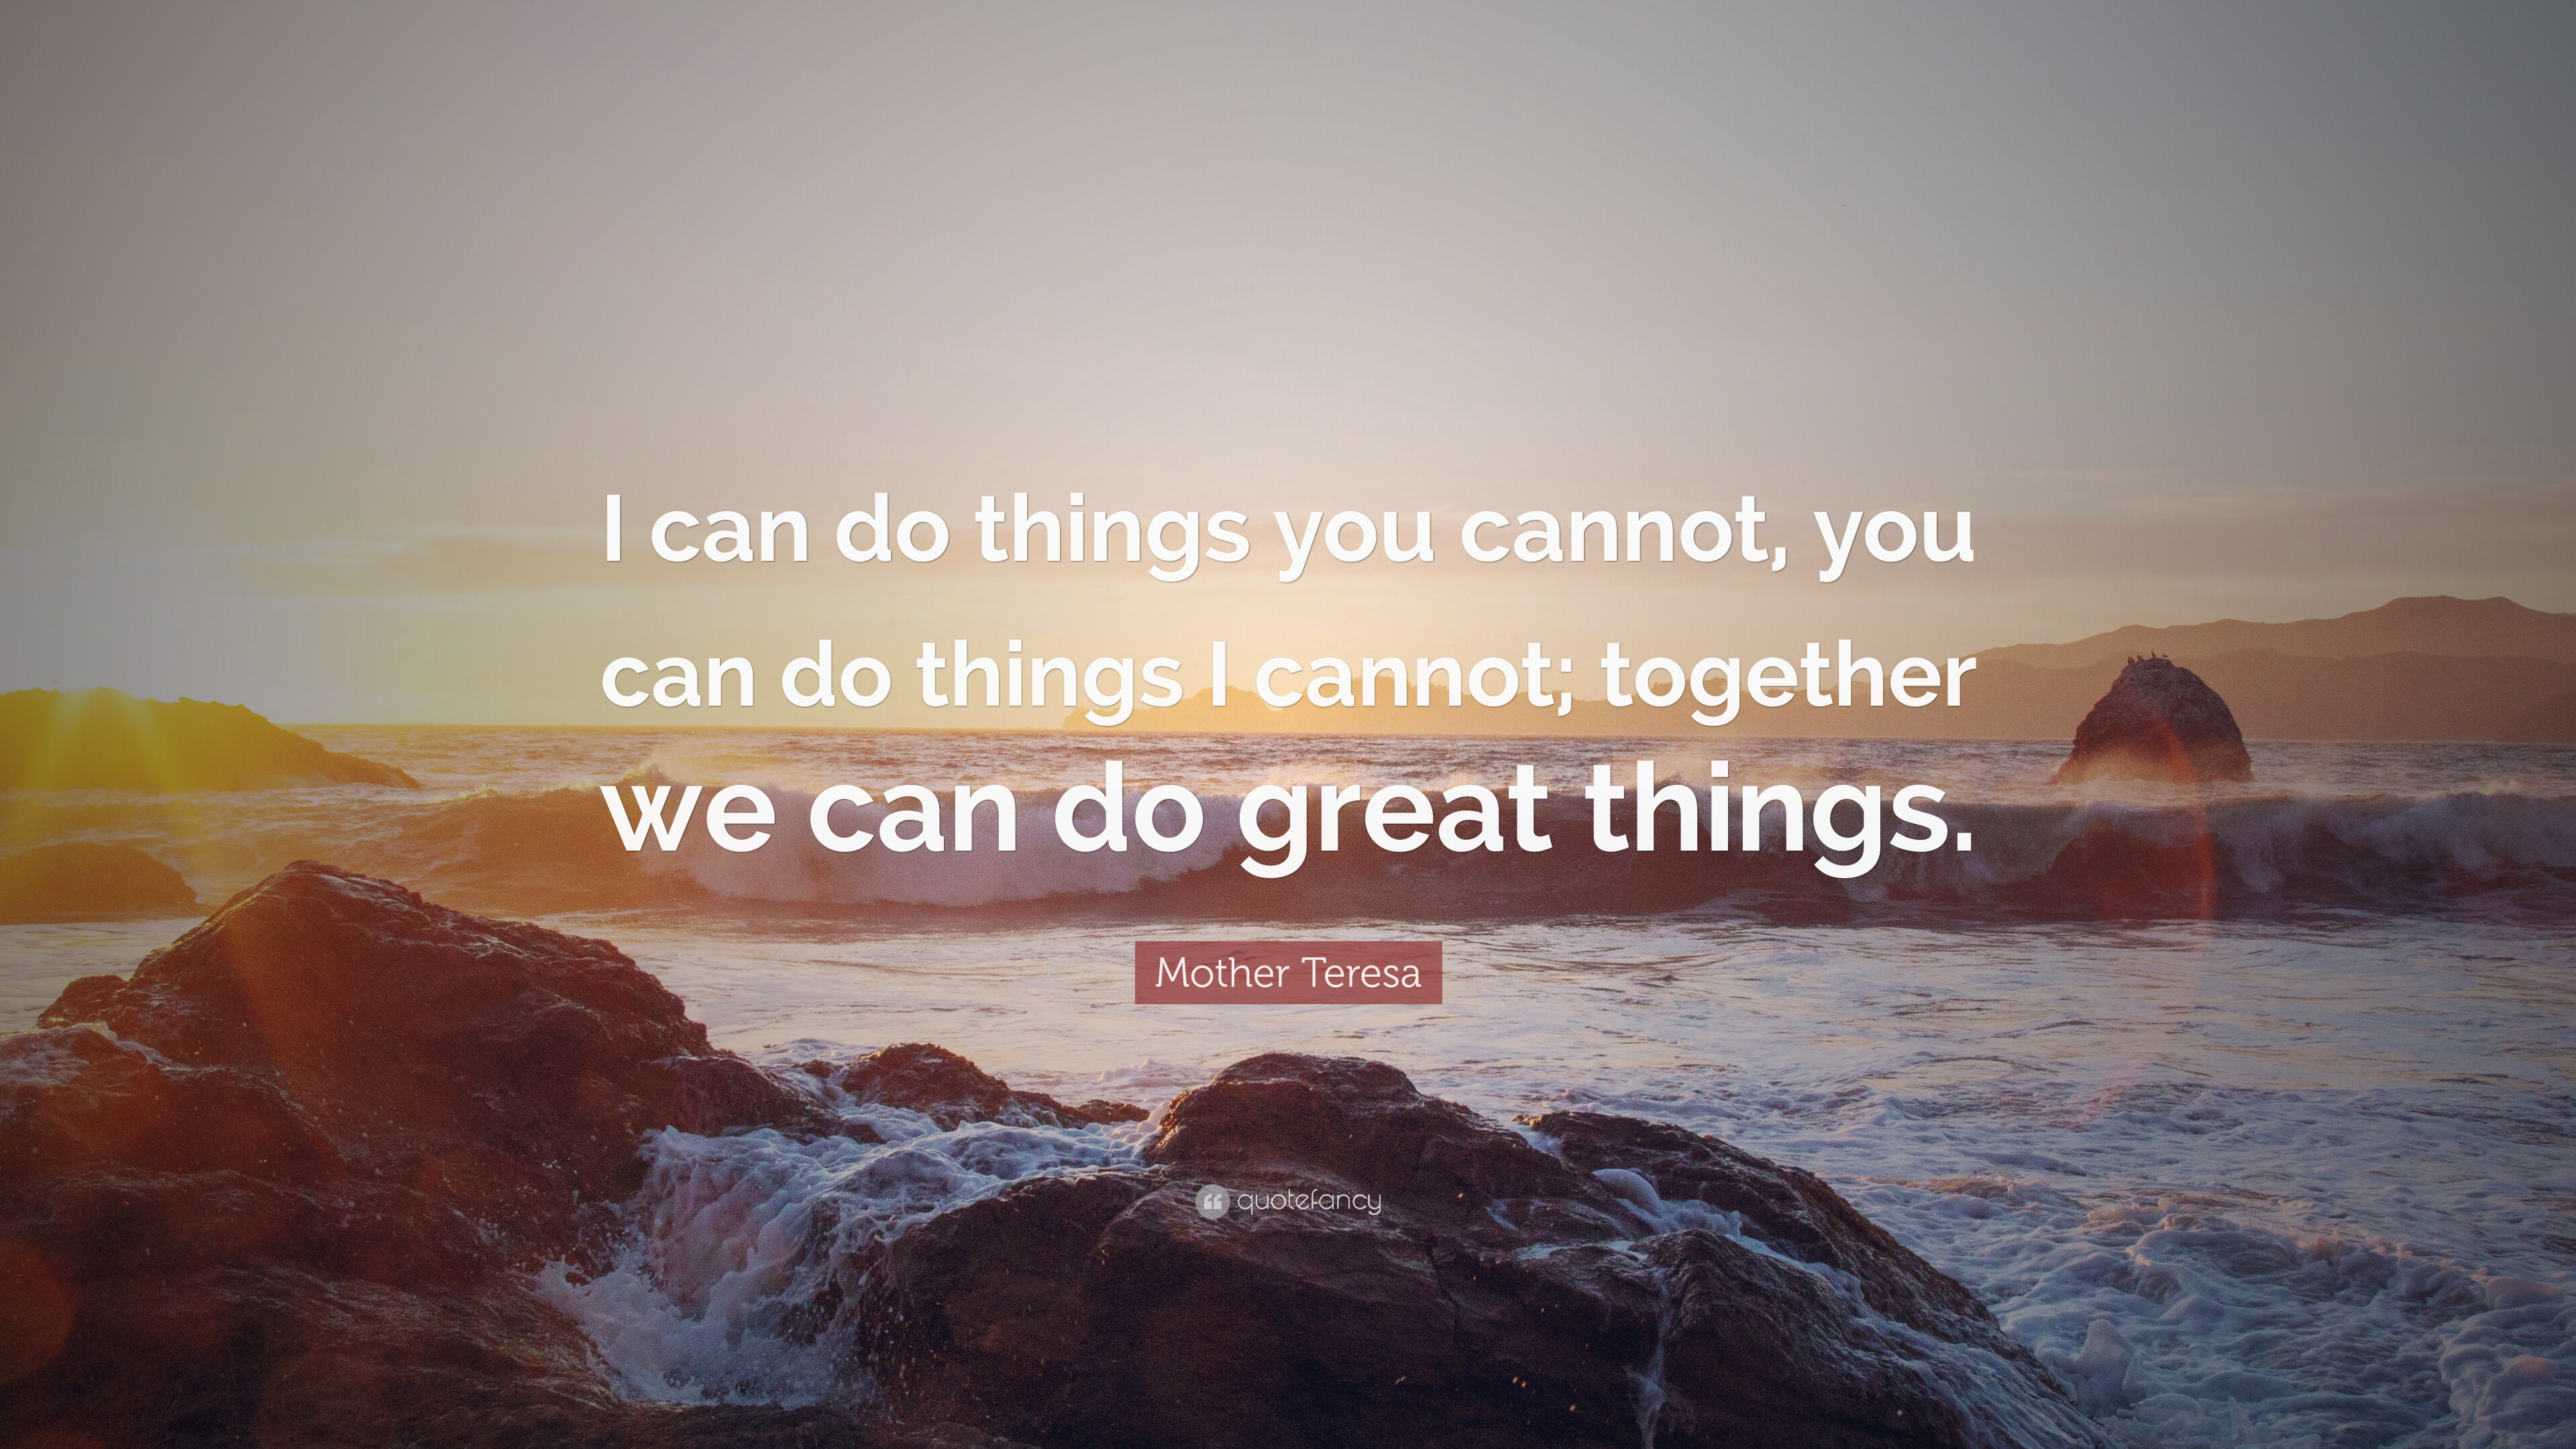 Can Can Cannot Things We I Can Do You You I Great Do Things Together Do Cannot Things